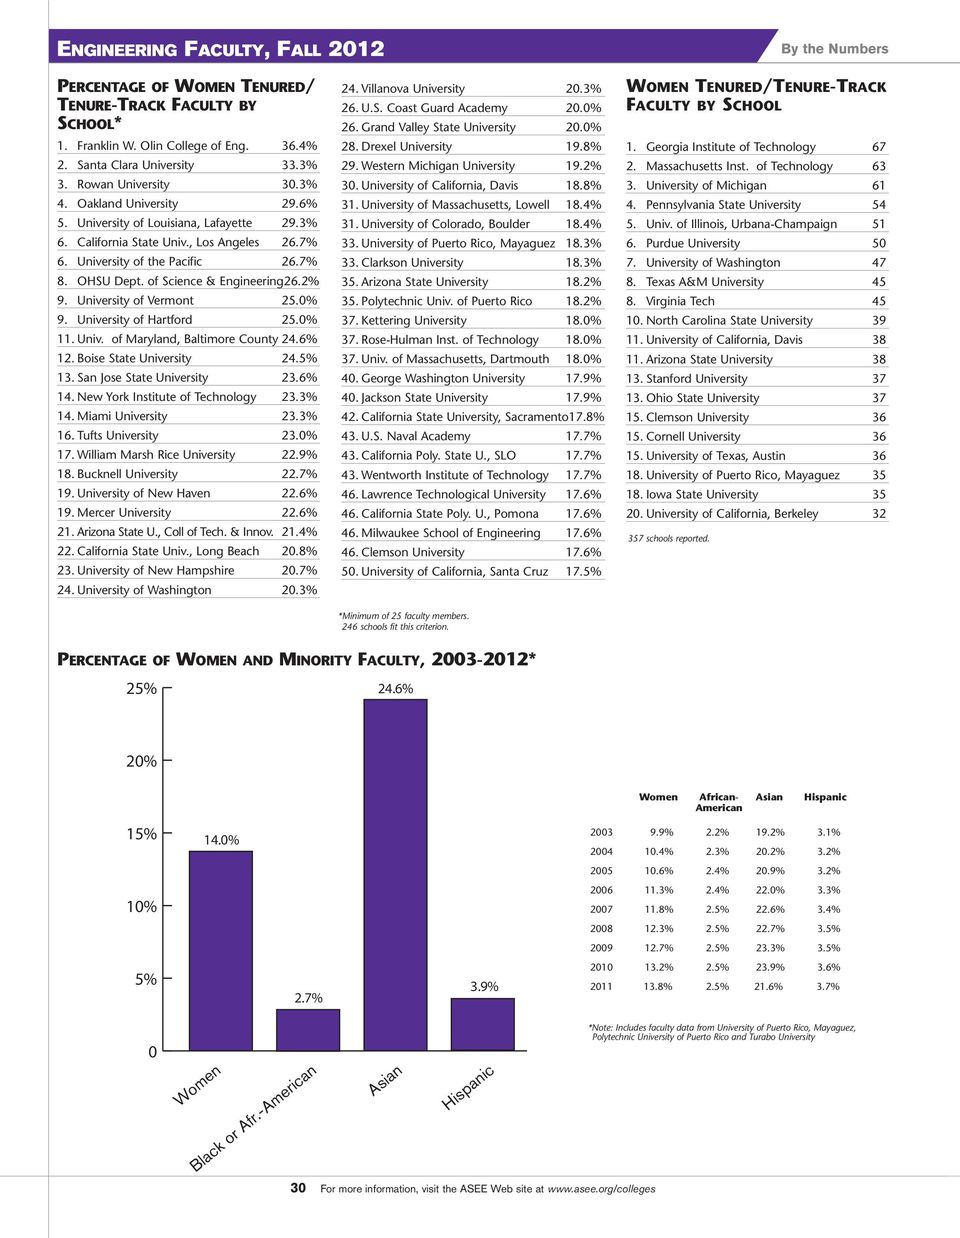 of Science & Engineering 26.2% 9. University of Vermont 25.% 9. University of Hartford 25.% 11. Univ. of Maryland, Baltimore County 24.6% 12. Boise State University 24.5% 13.